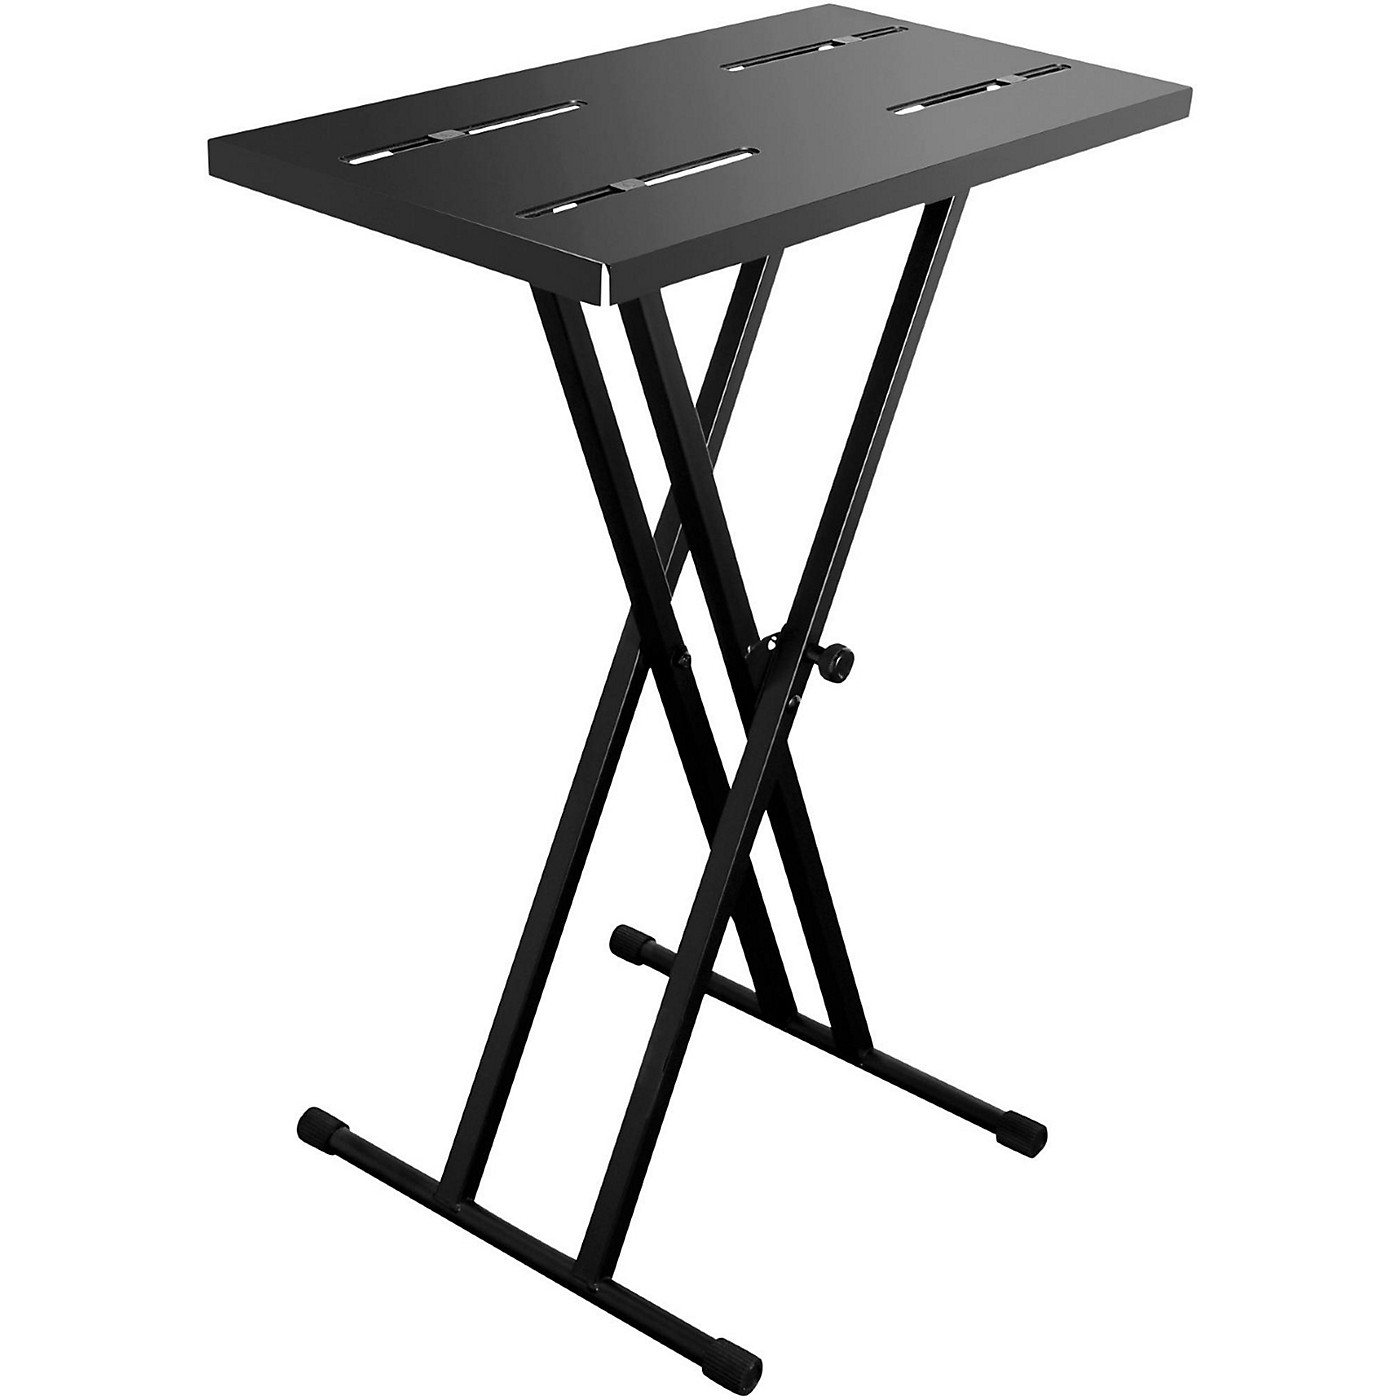 On-Stage On-Stage Utility Tray for X-style Keyboard Stands thumbnail